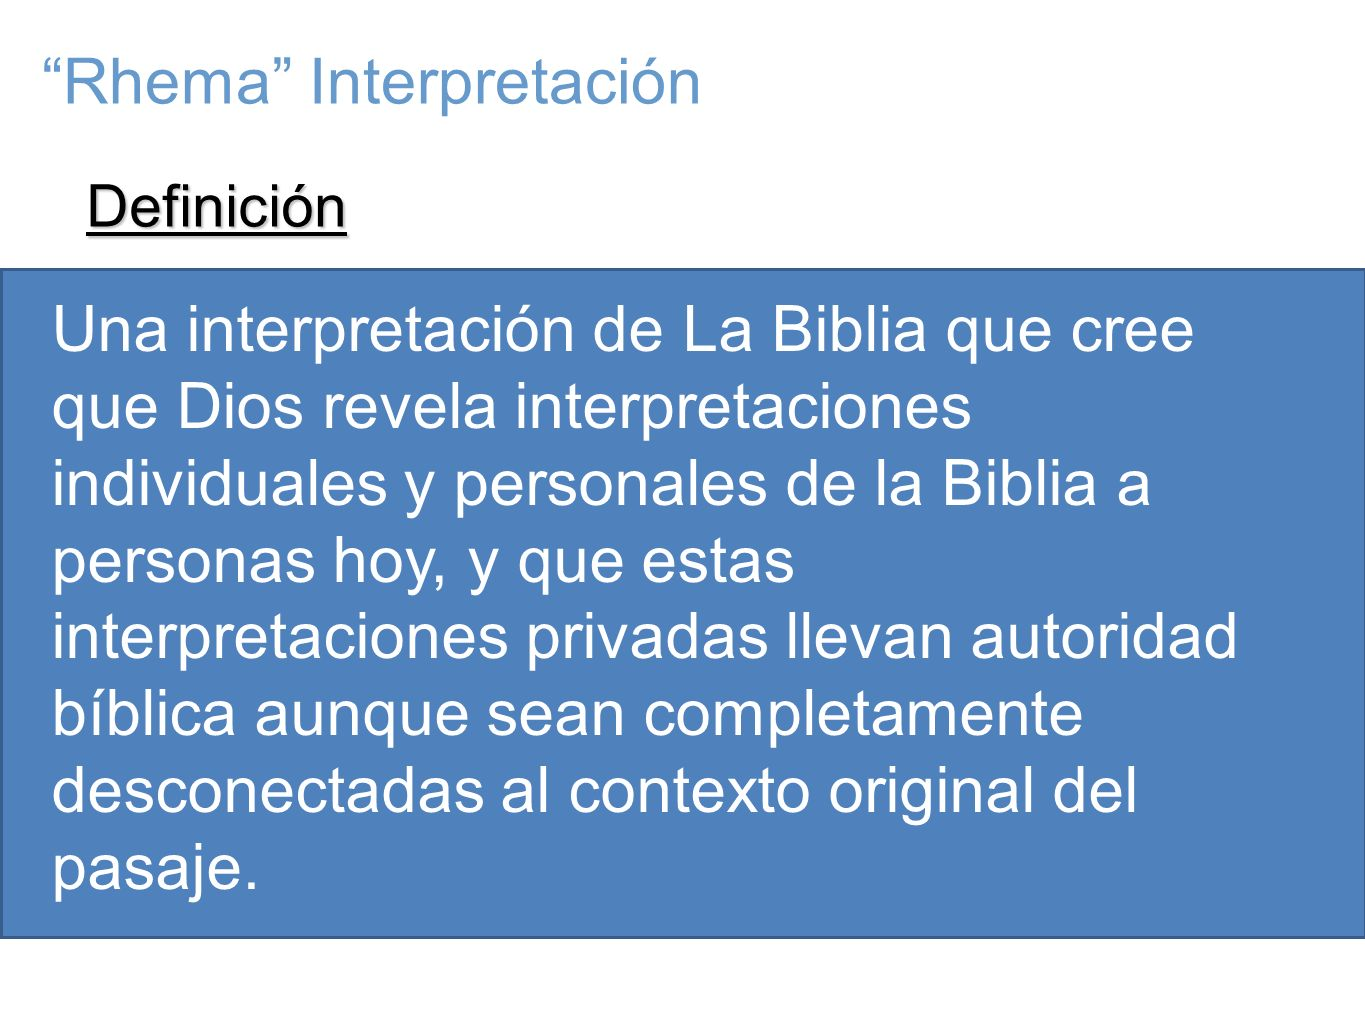 Rhema Interpretación